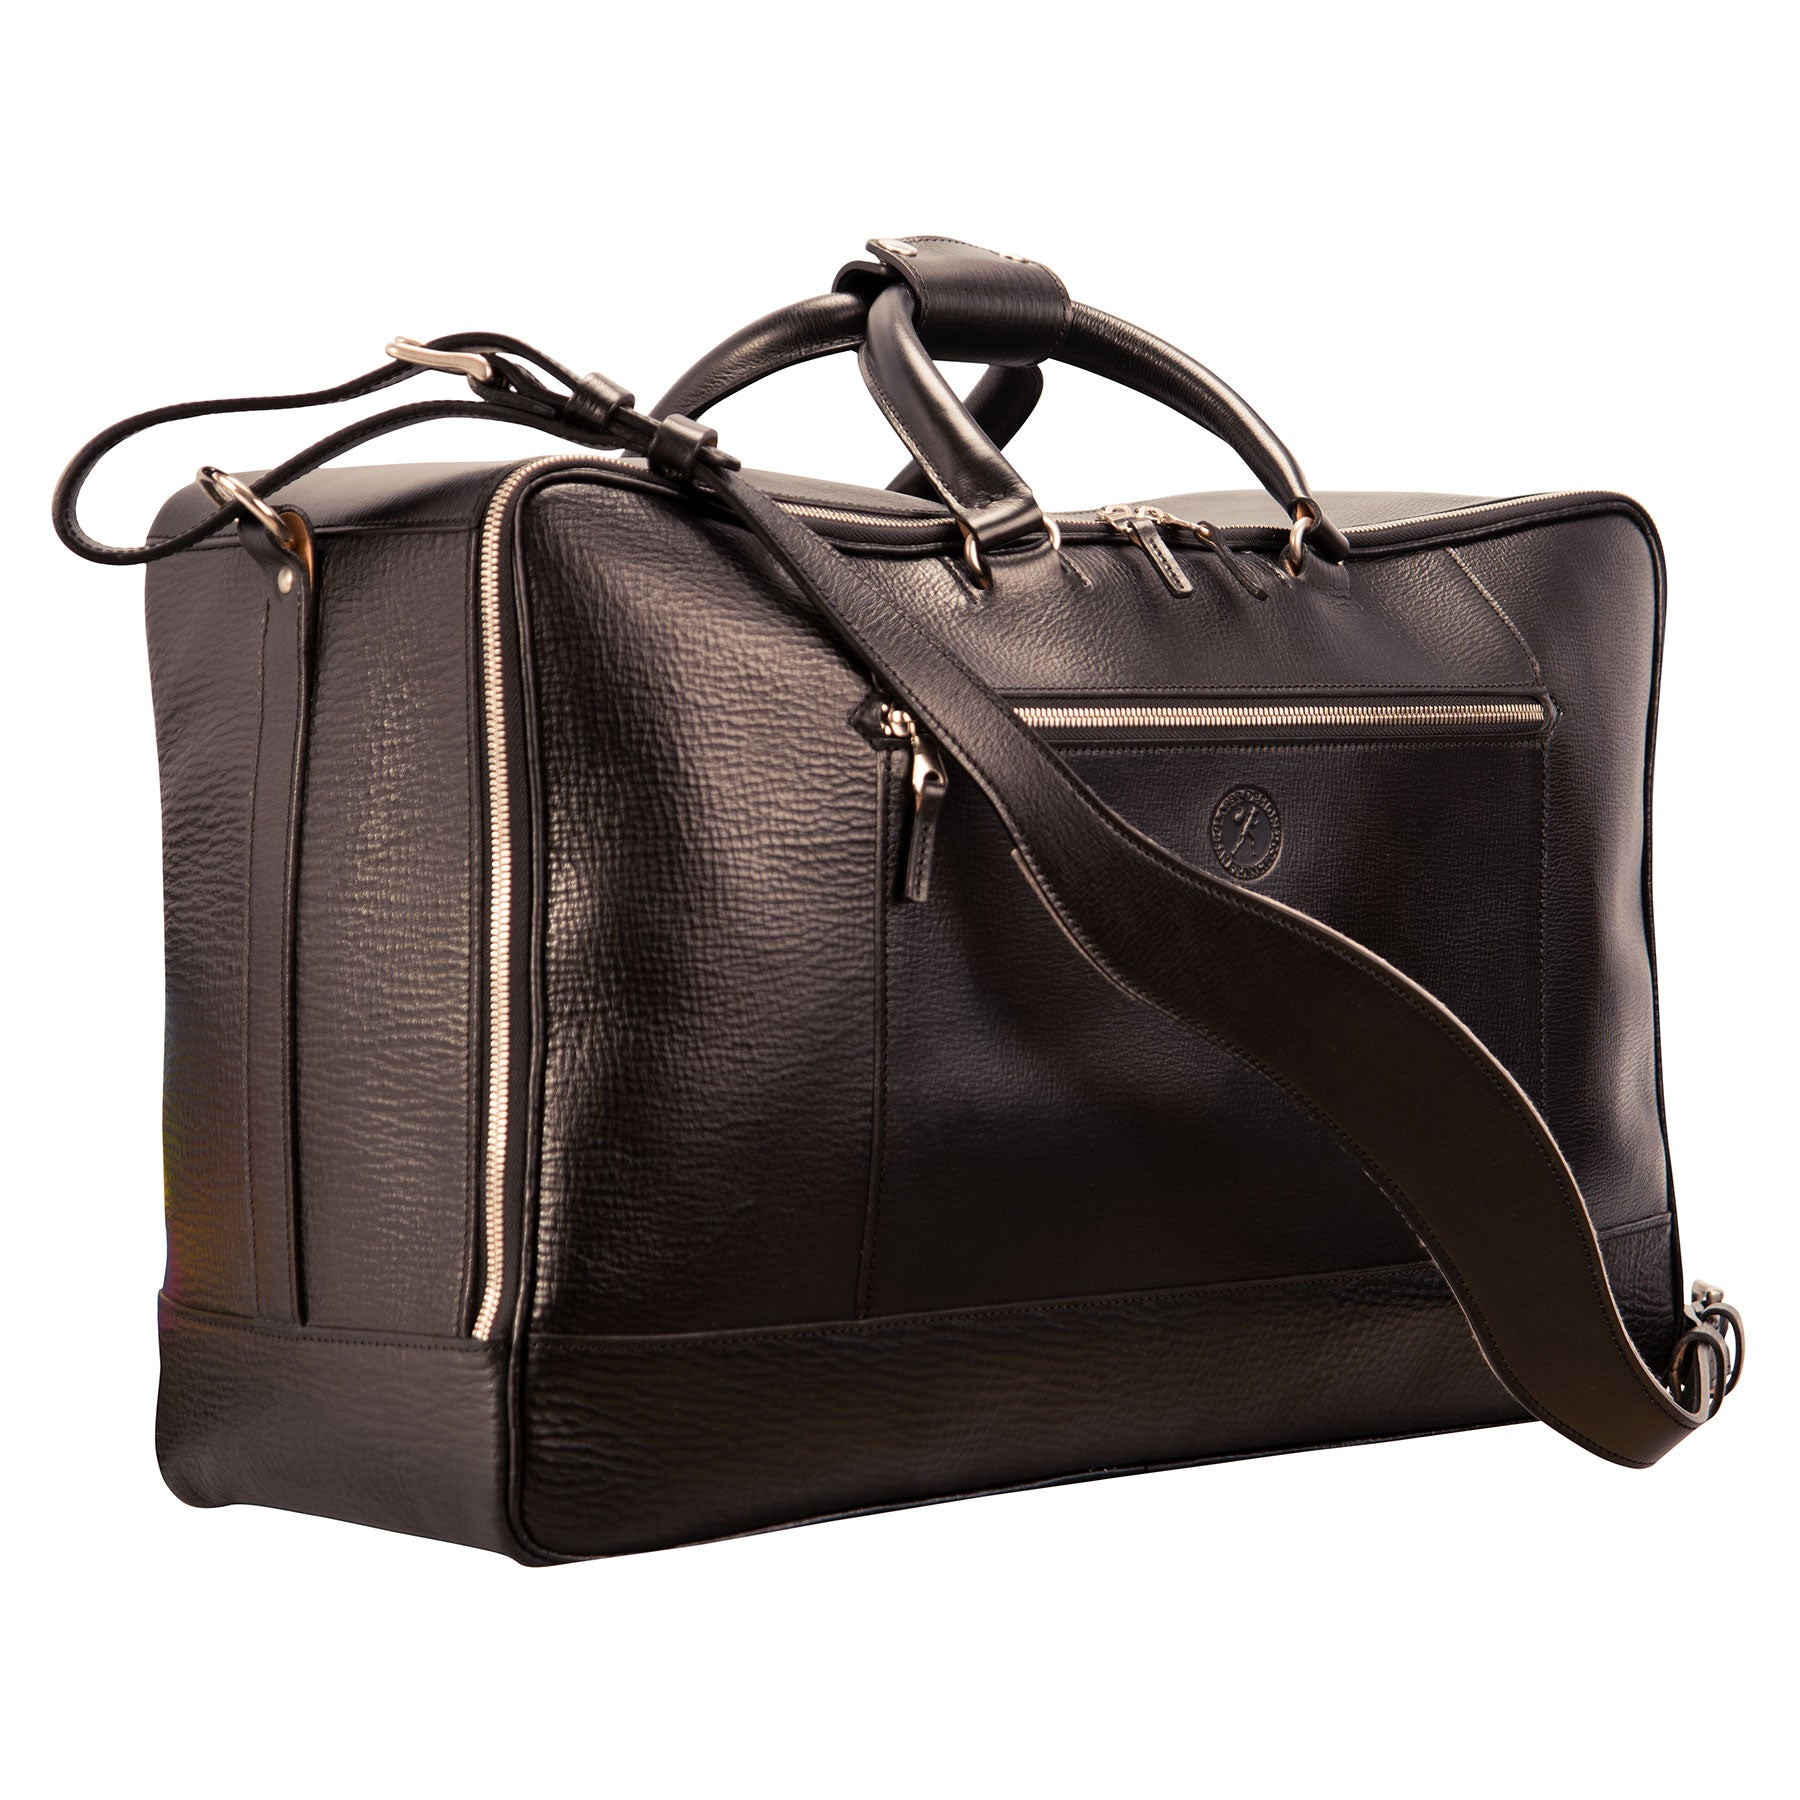 Square Duffel: hand-grained, hand-colored leather